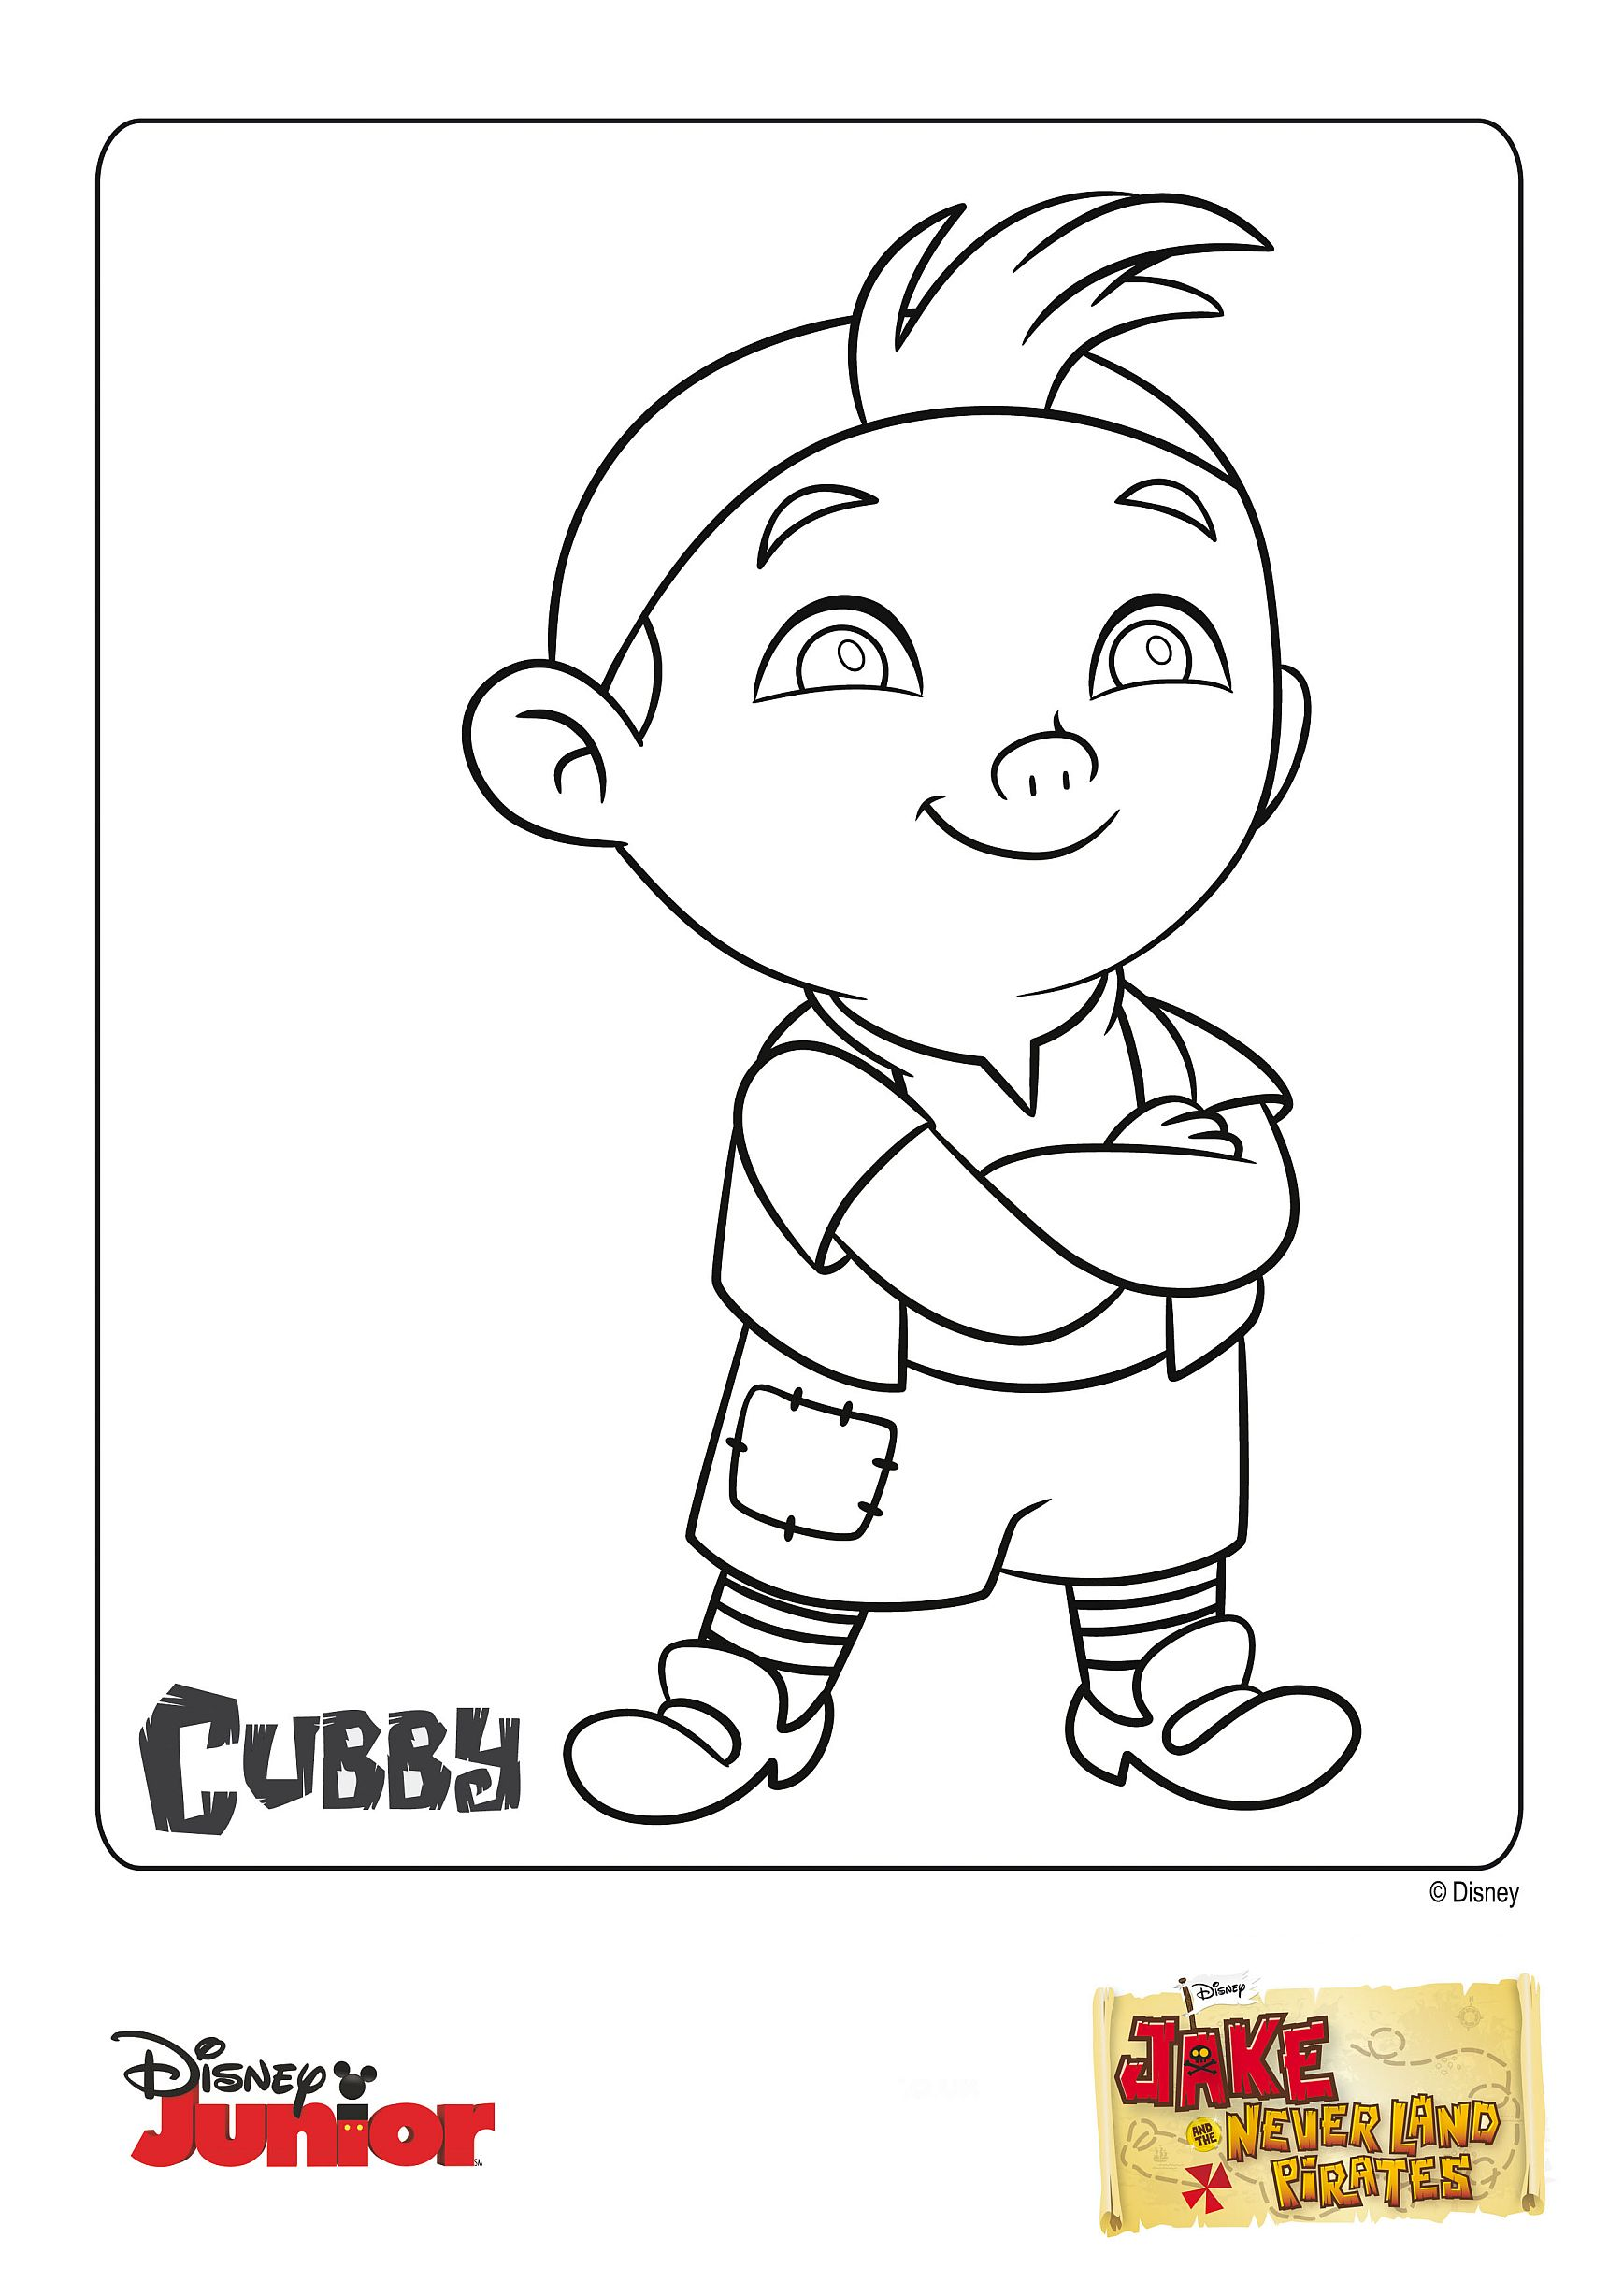 Coloring pages for jake and the neverland pirates - Free Printable Coloring Pages Jake And The Neverland Pirates Free Coloring Pages Jake The Pirate